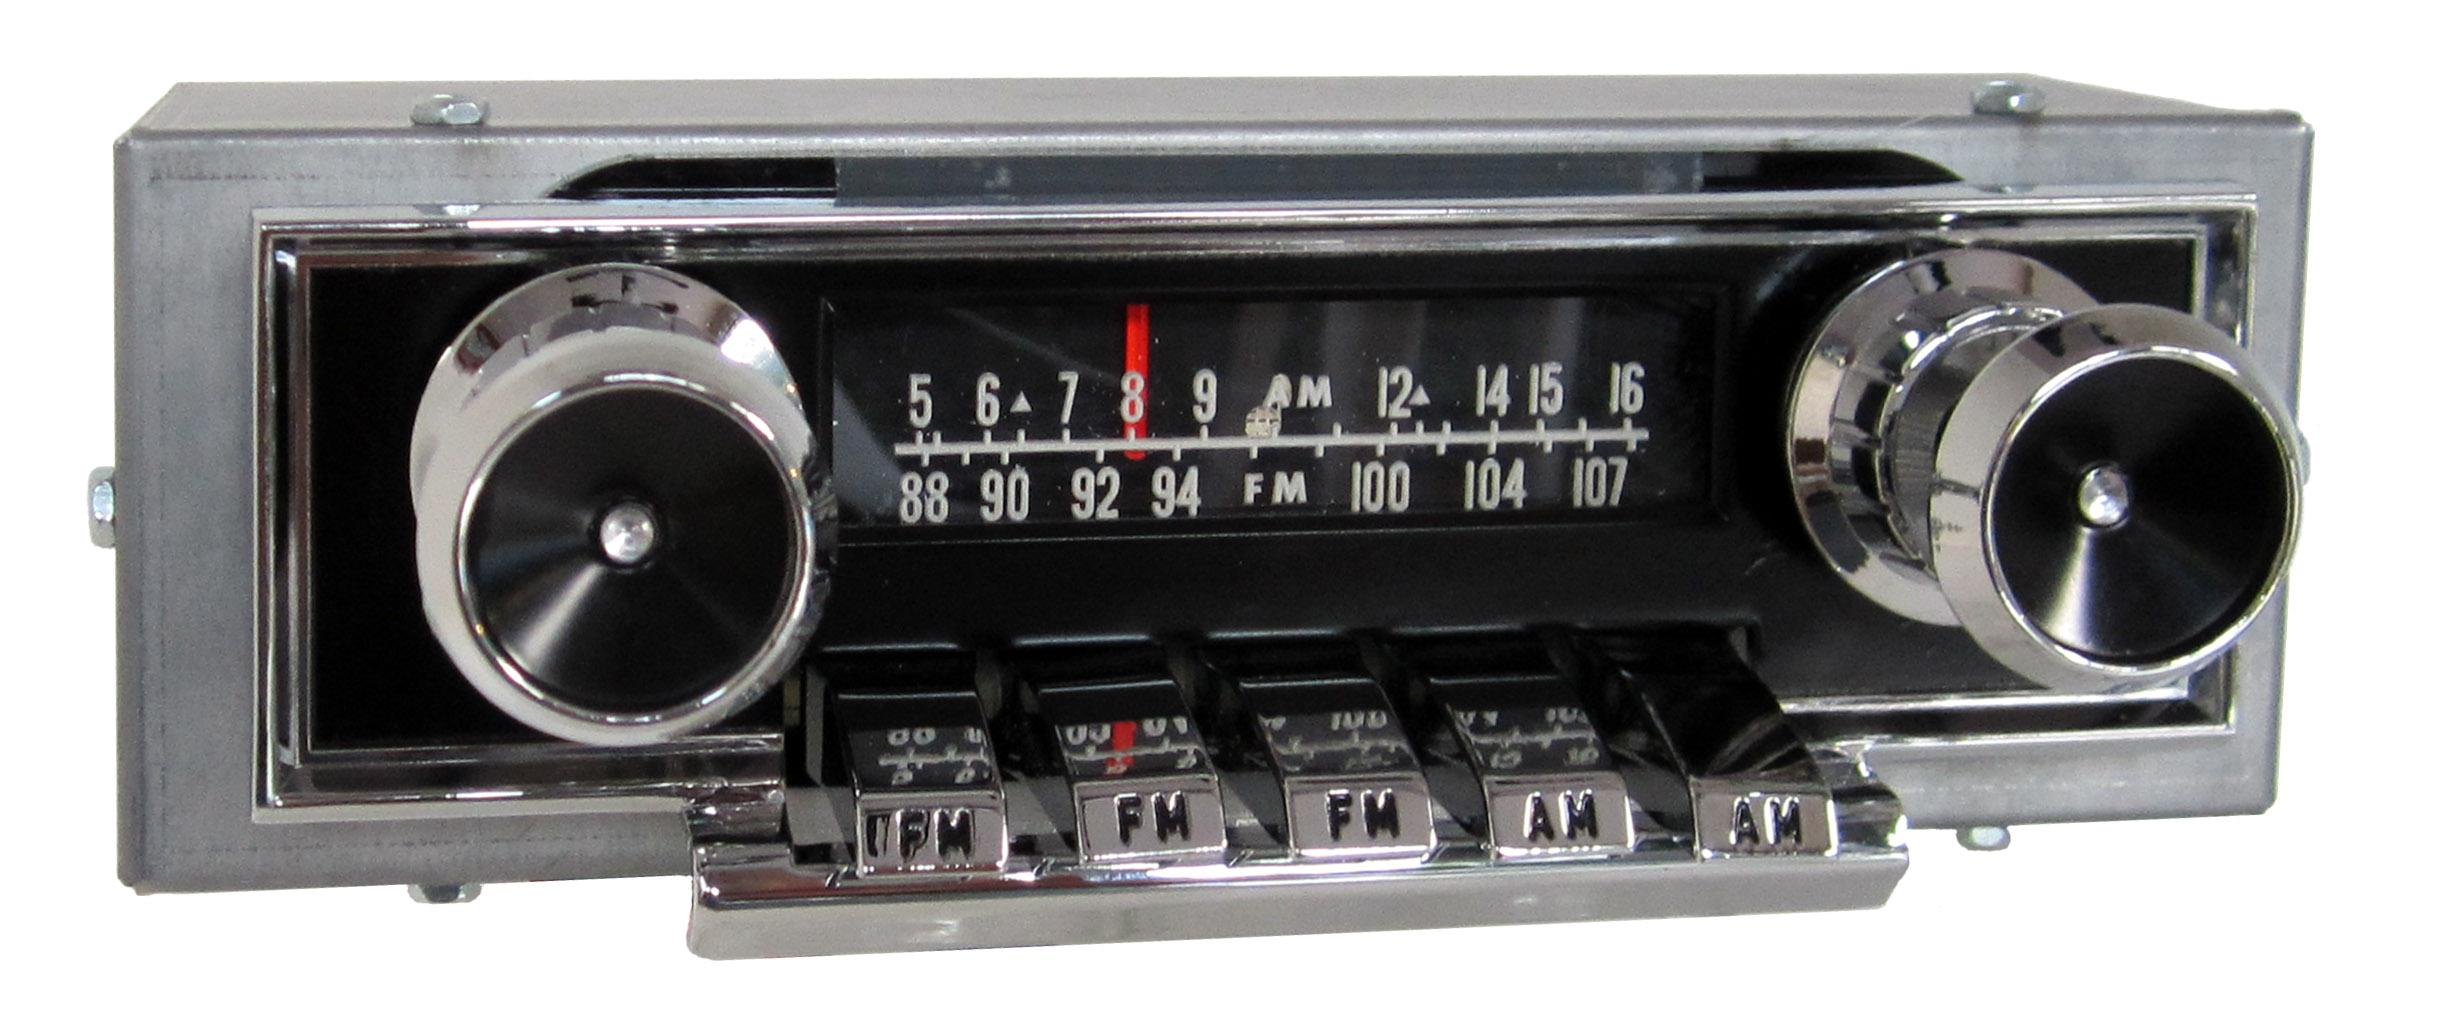 1963 FORD GALAXIE AM-FM STEREO RADIO